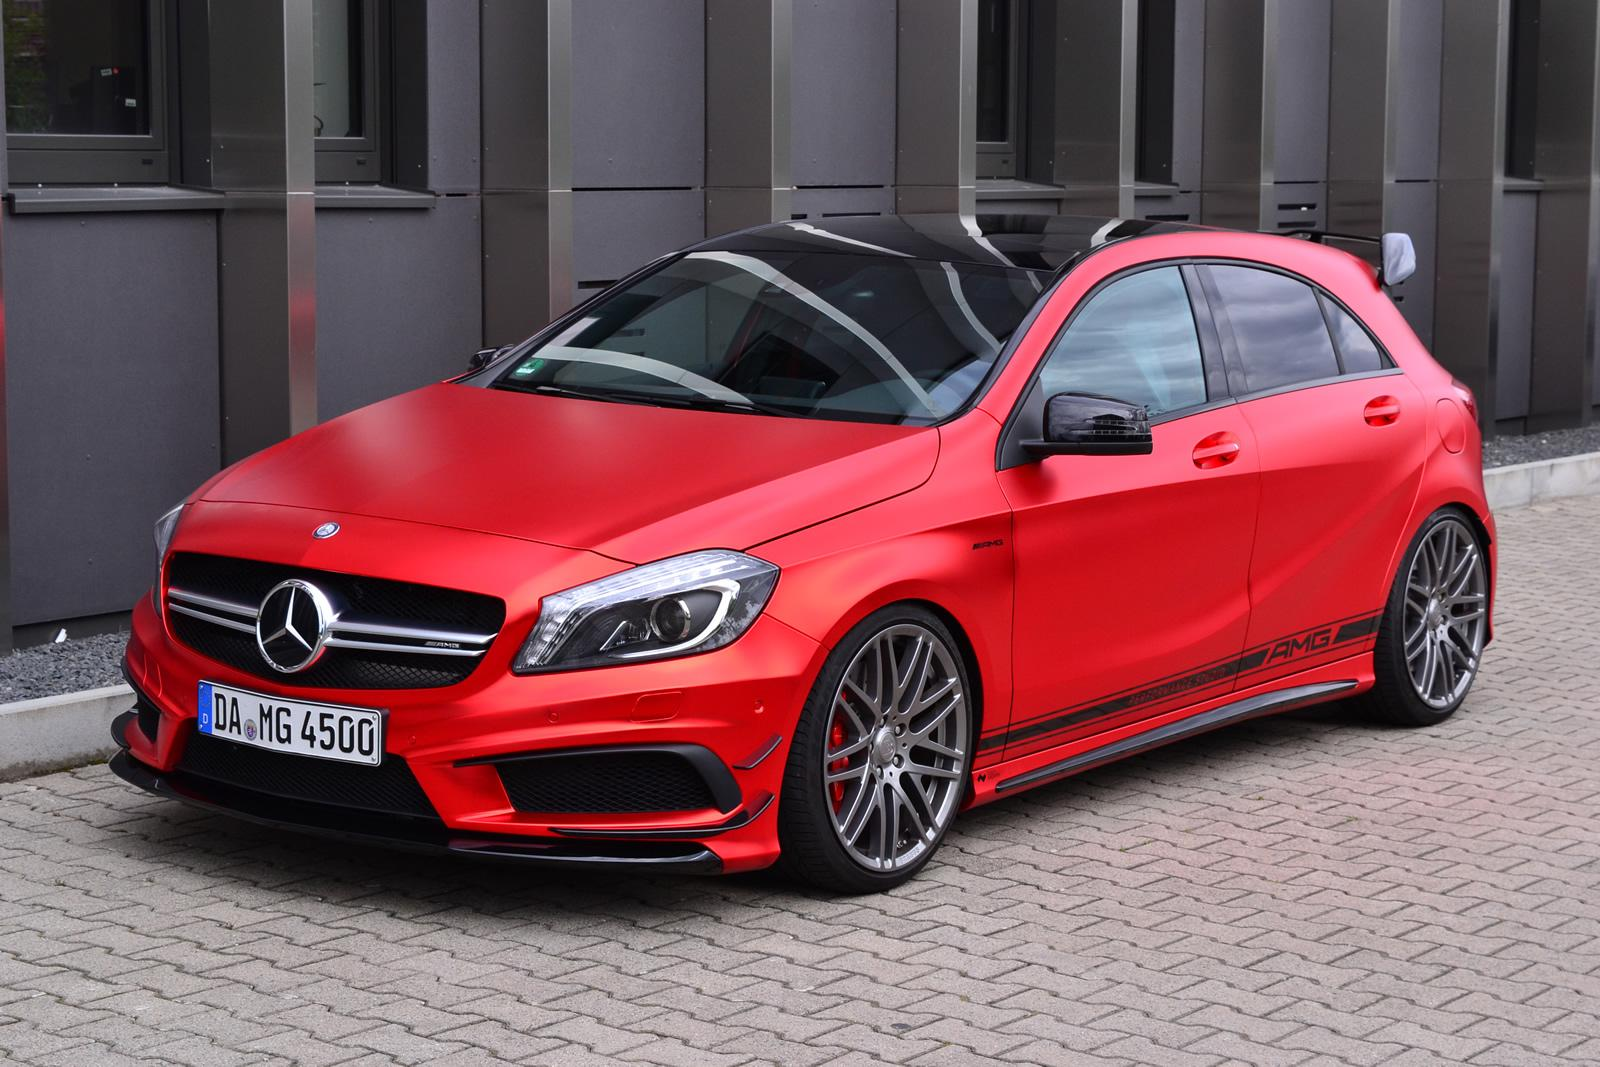 Mercedez Amg Black >> Mercedes-Benz A45 AMG Gets Wrapped in Wonderful Red Matte Foil, Is Boosted to 435 HP - autoevolution